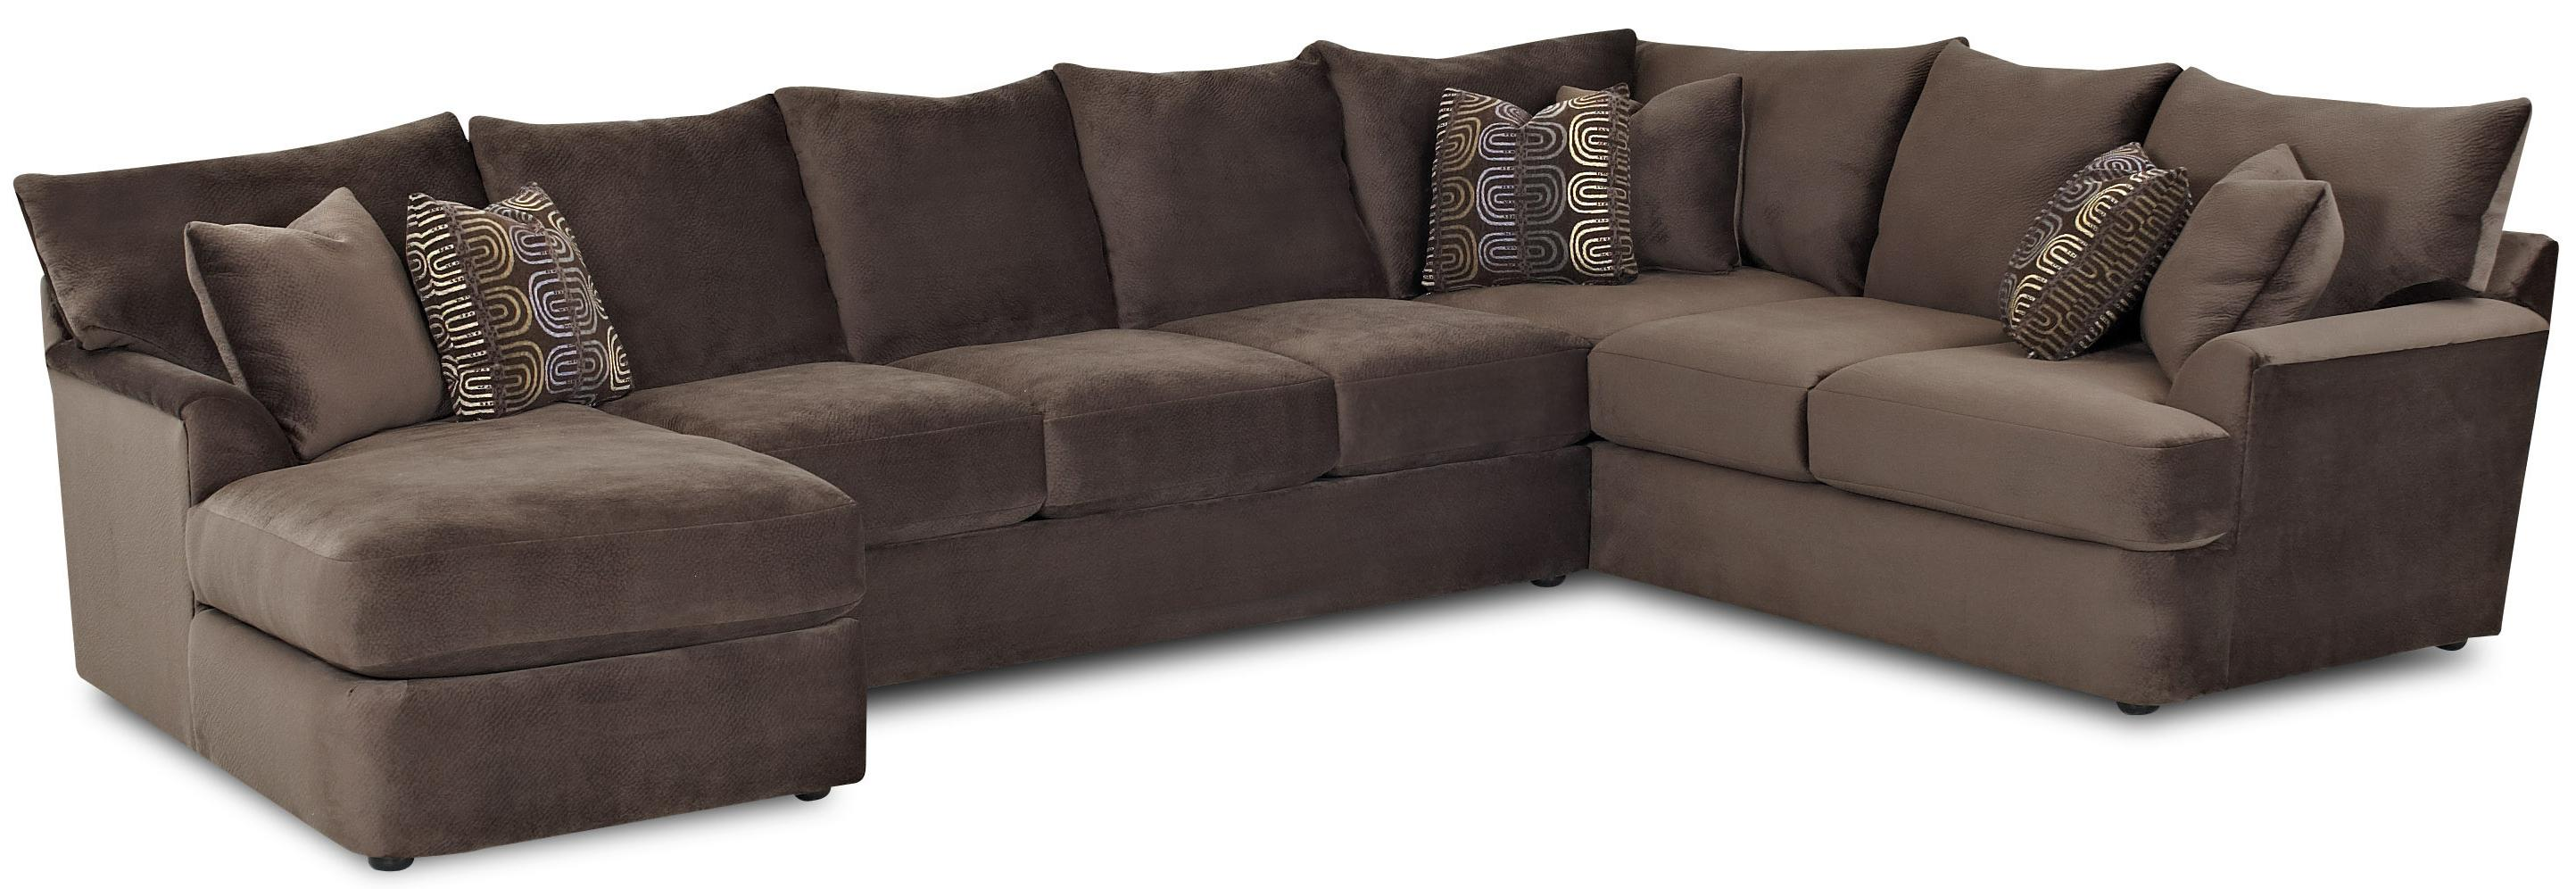 L Shaped Sectional Sofa with Left Chaise